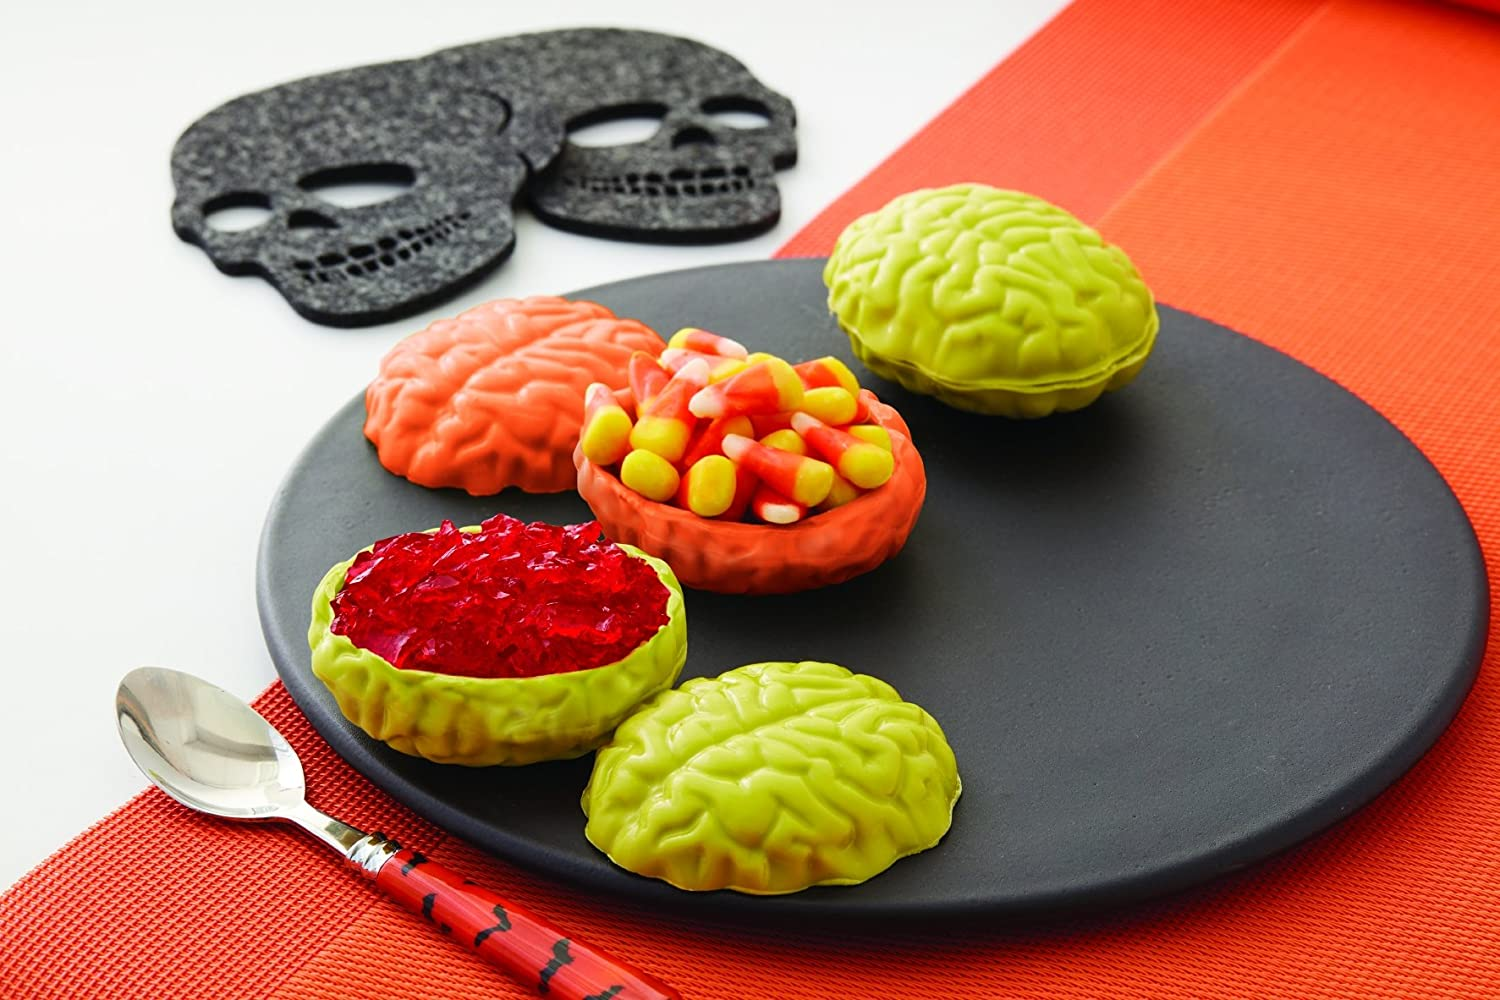 You can buy theWilton Brains Halloween Candy Mold here